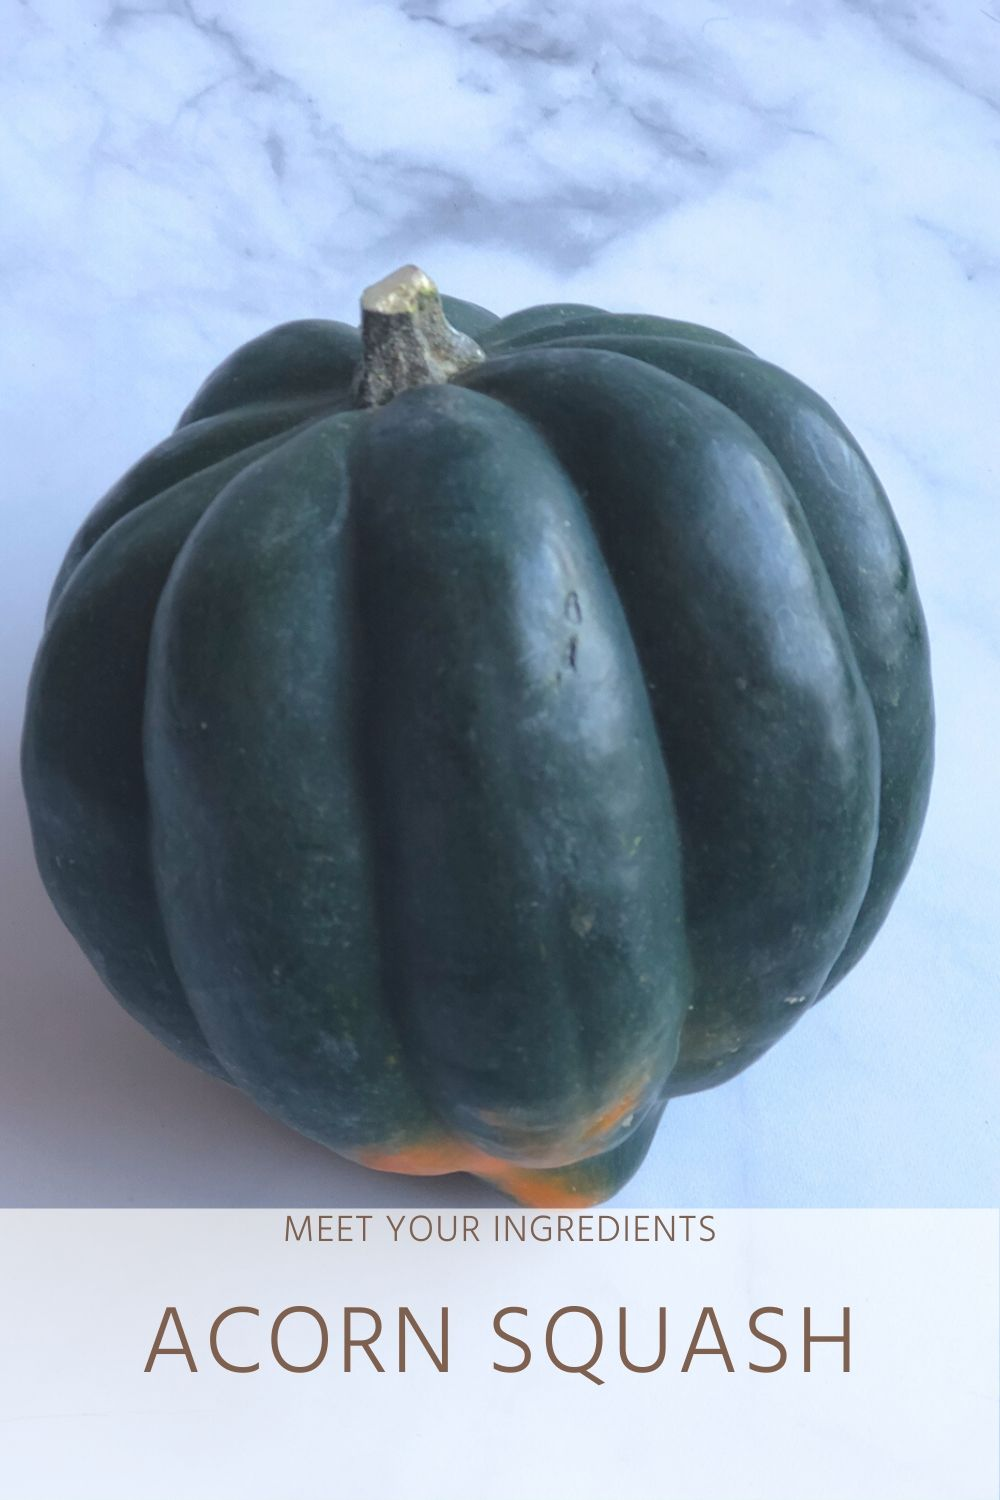 Meet Your Ingredients: Acorn Squash